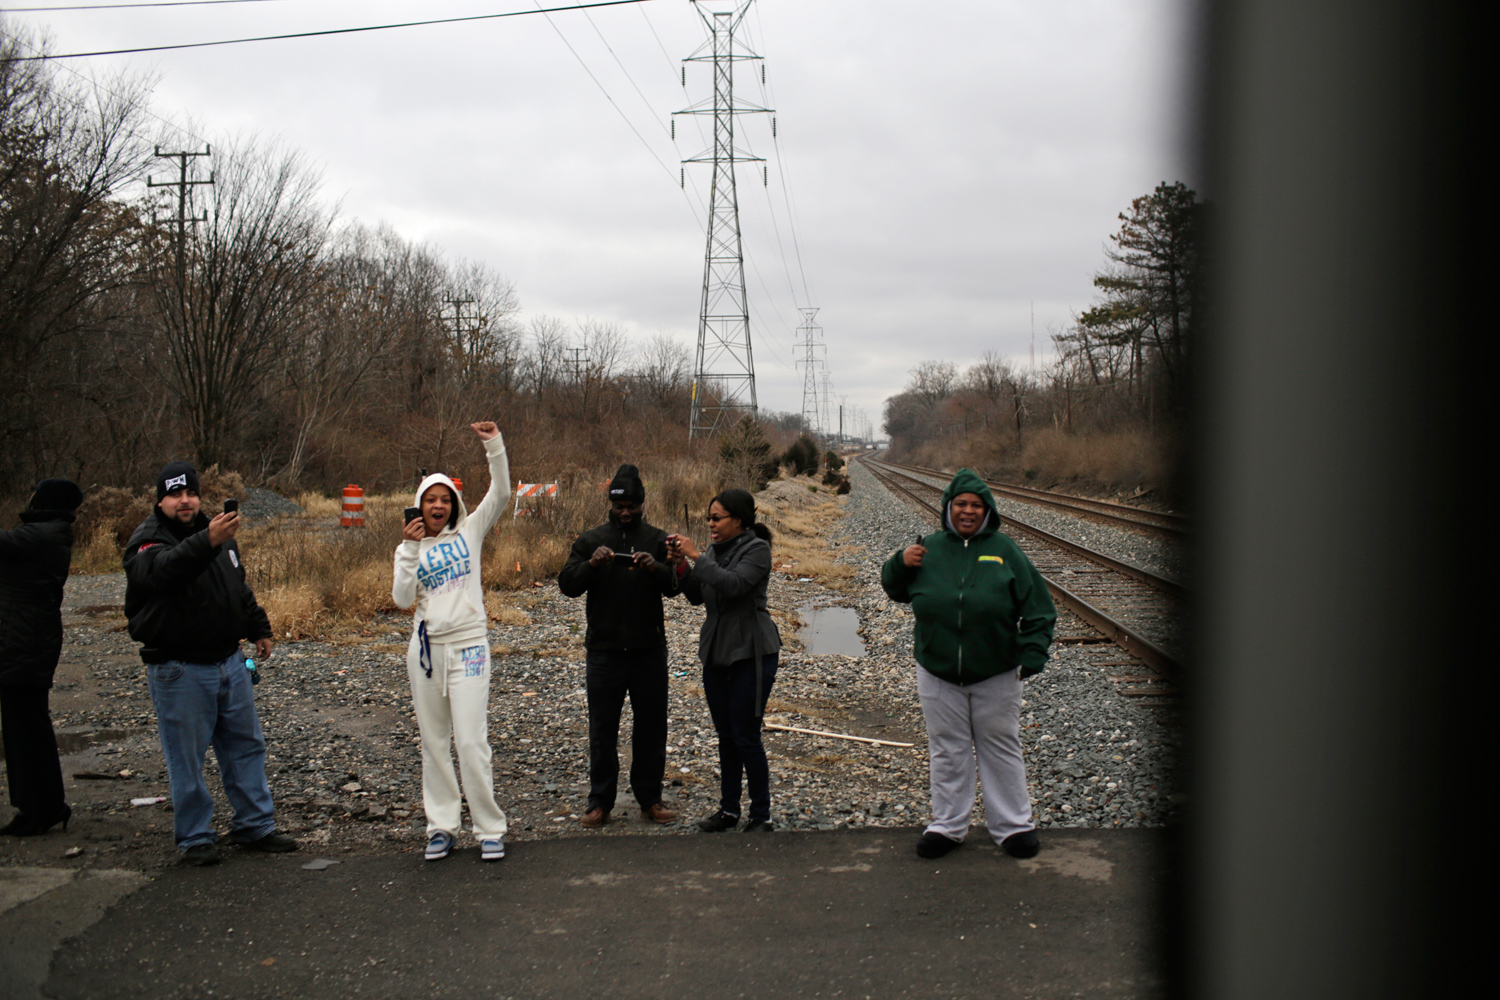 Residents in Redford, Mich., lined the road to catch a glimpse of Obama's motorcade.